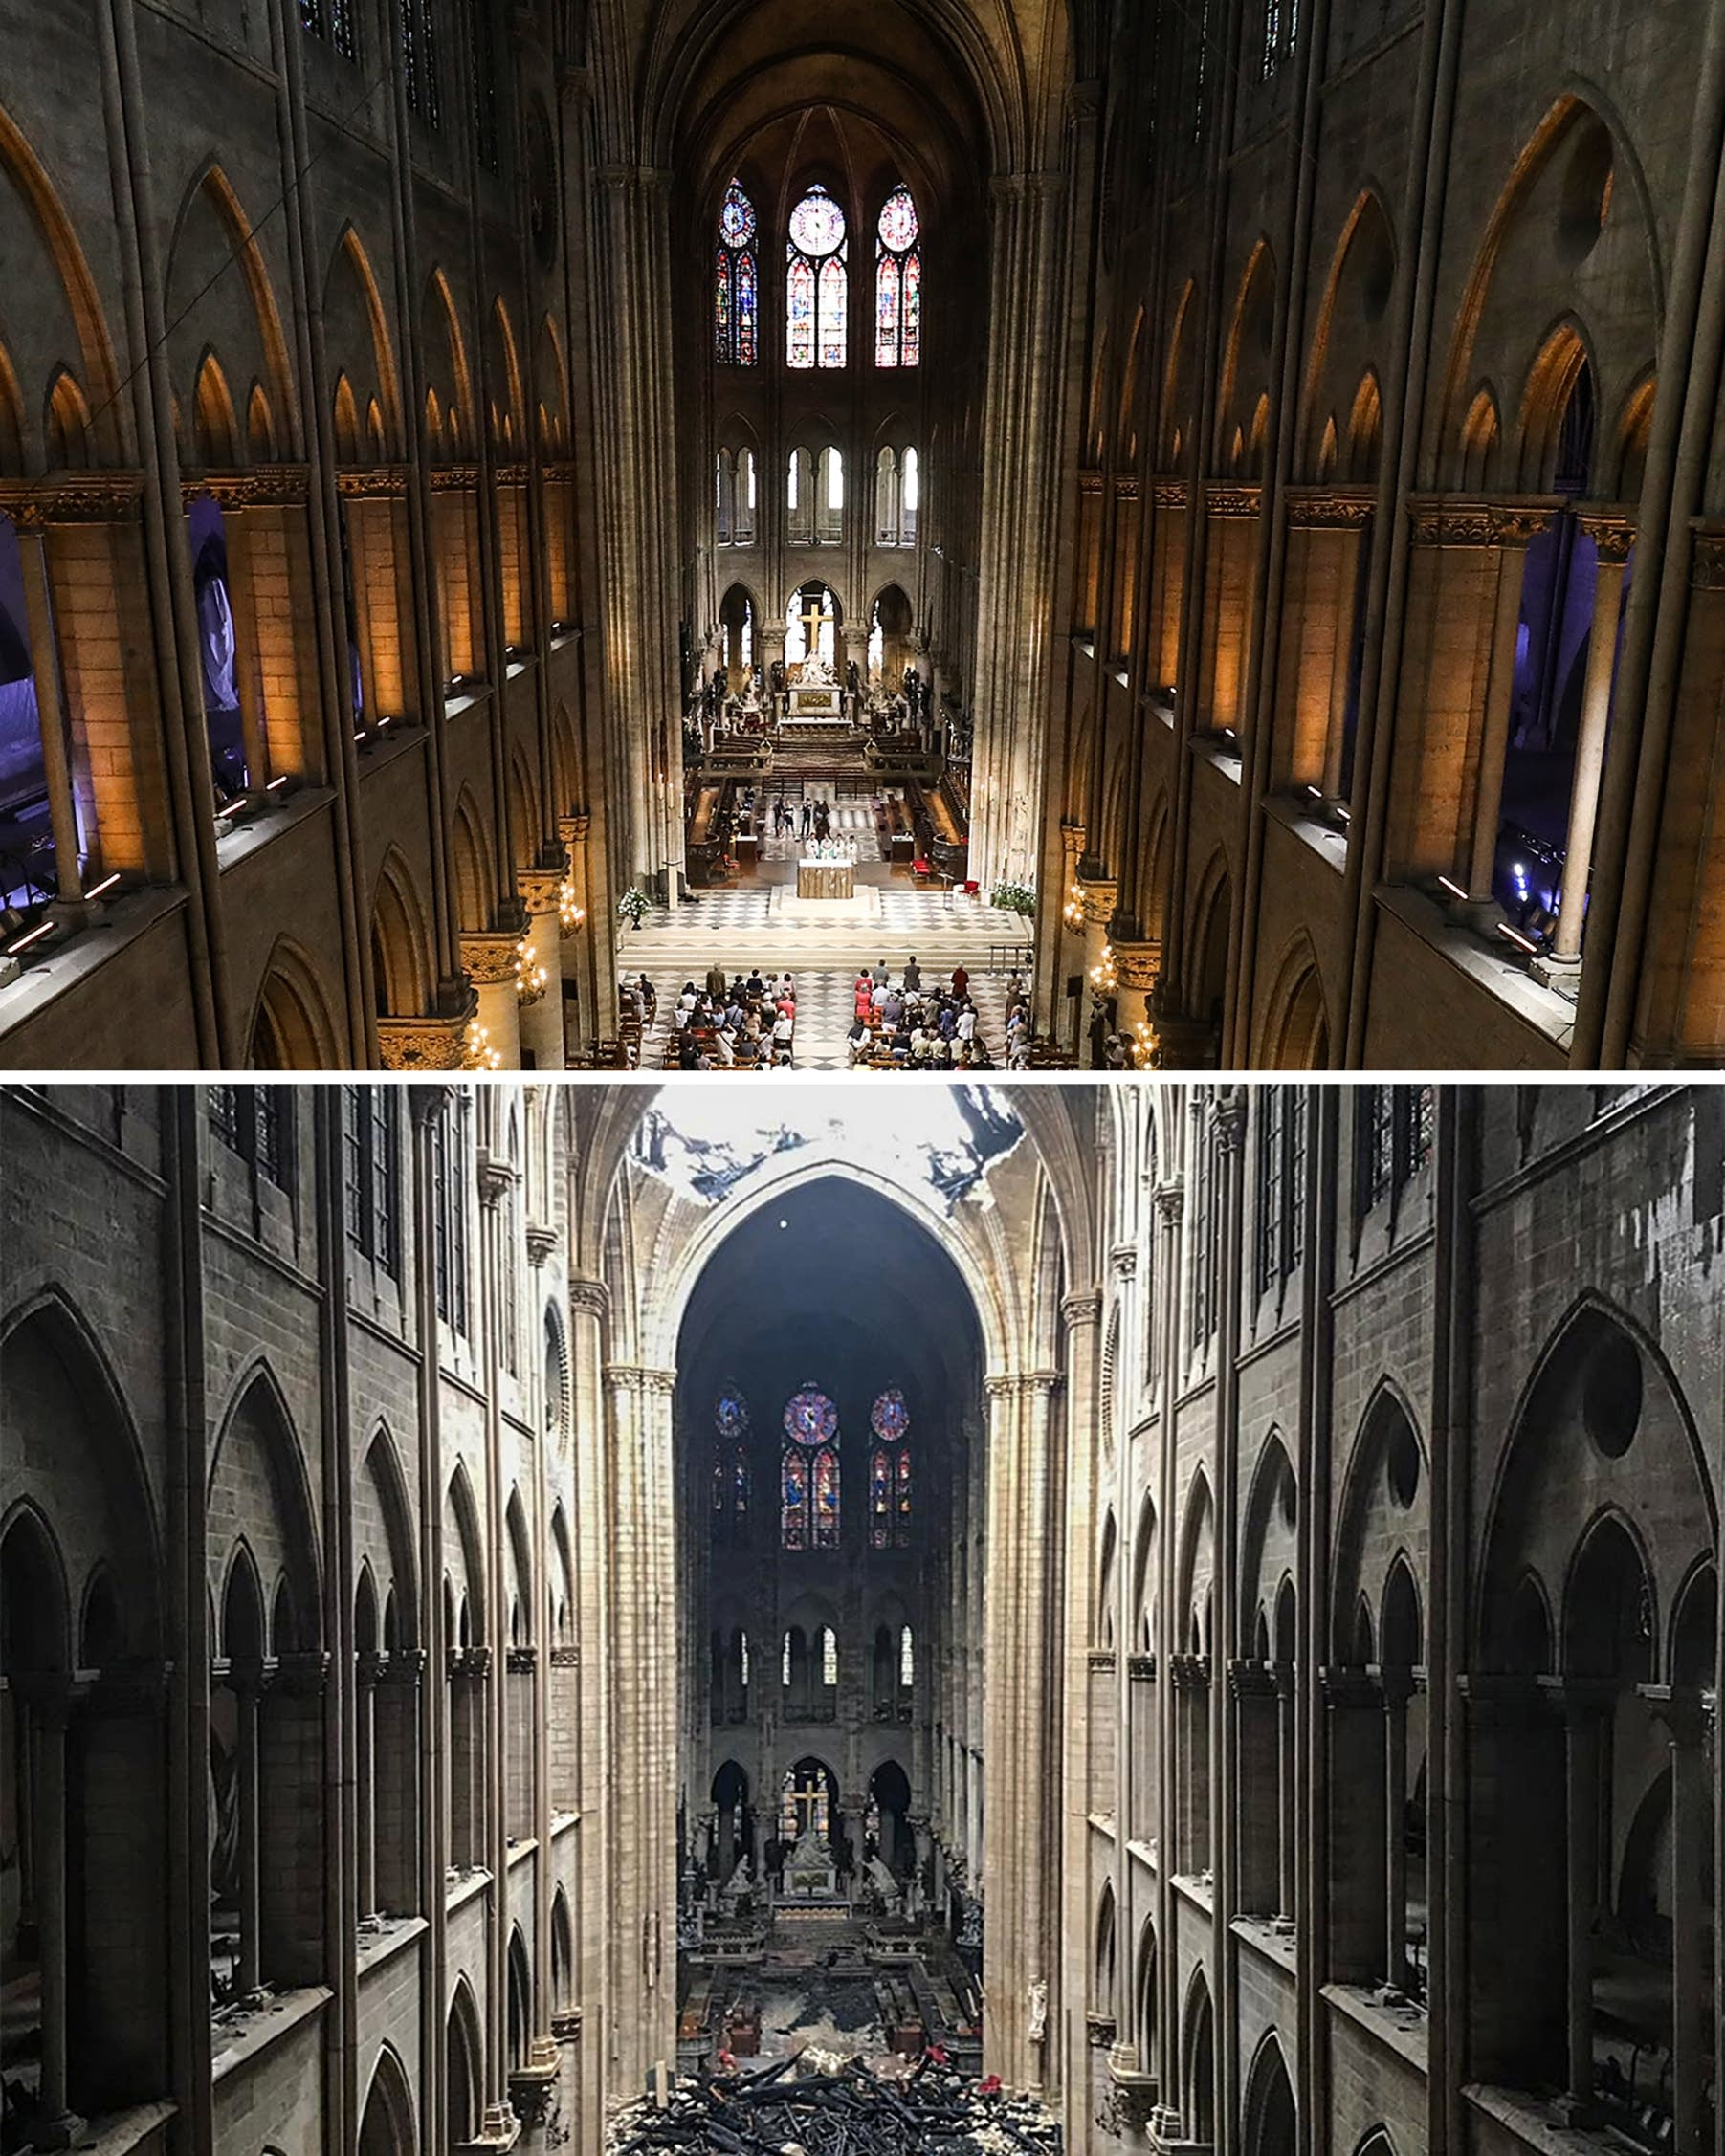 Notre Dame in Paris on Tuesday (down), and on June 26, 2018 (up).